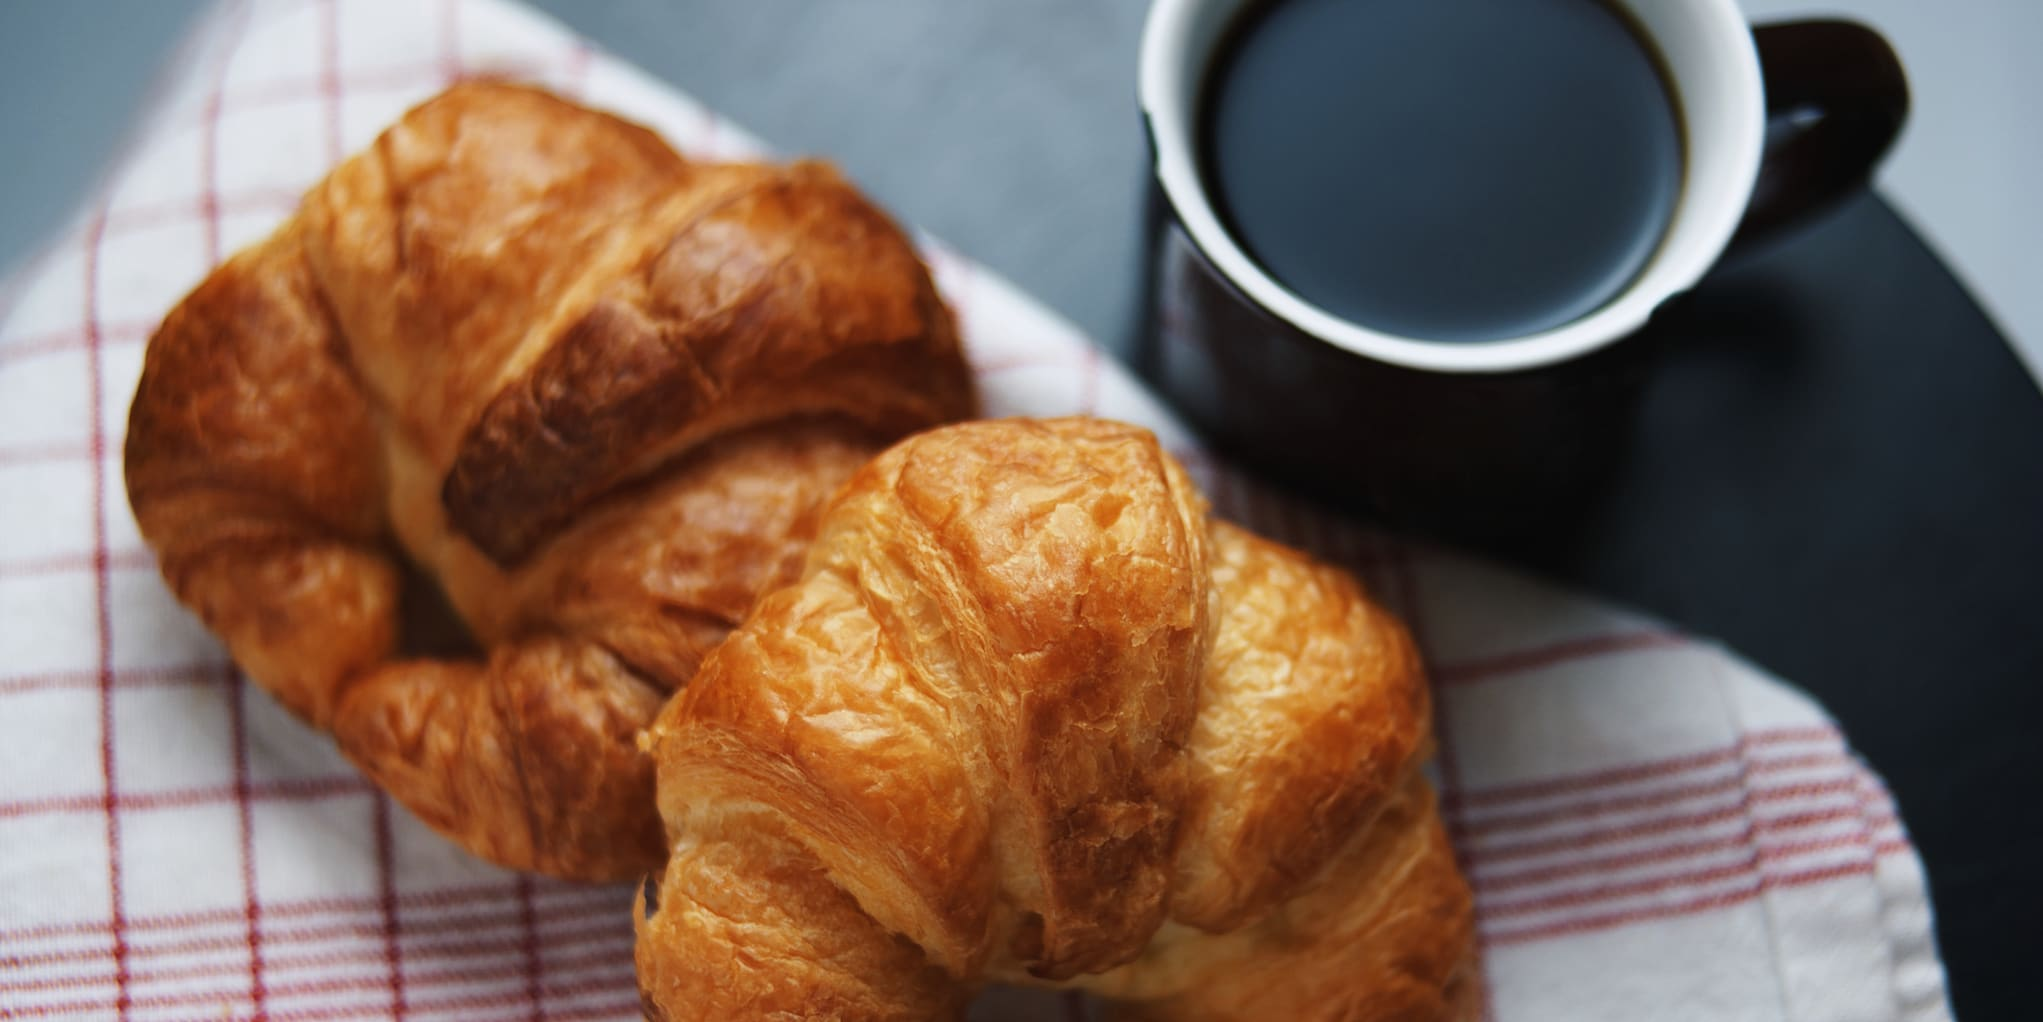 Napkin, No People, Baked, Refreshment, Breakfast, High Angle View, Day, Table, Indoors, Focus On Foreground, Coffee Cup, Freshness, Temptation, Baked Pastry Item, Food, Food And Drink, Still Life, Croissant, Coffee - Drink, Unhealthy Eating, Drink, Sweet Food, Horizontal Image